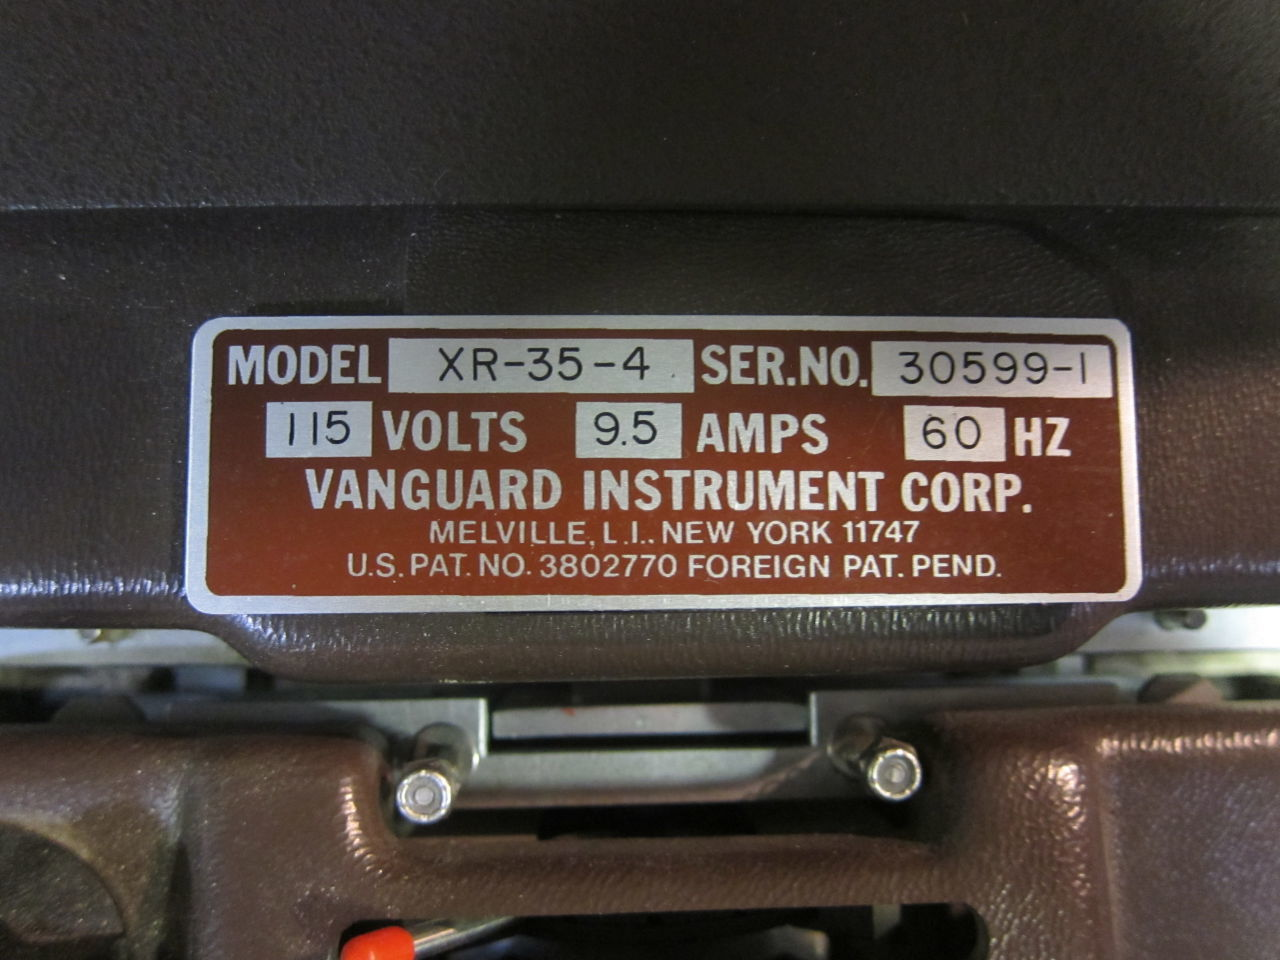 VANGUARD INSTRUMENT CORP. XR-35-4 Film Processor